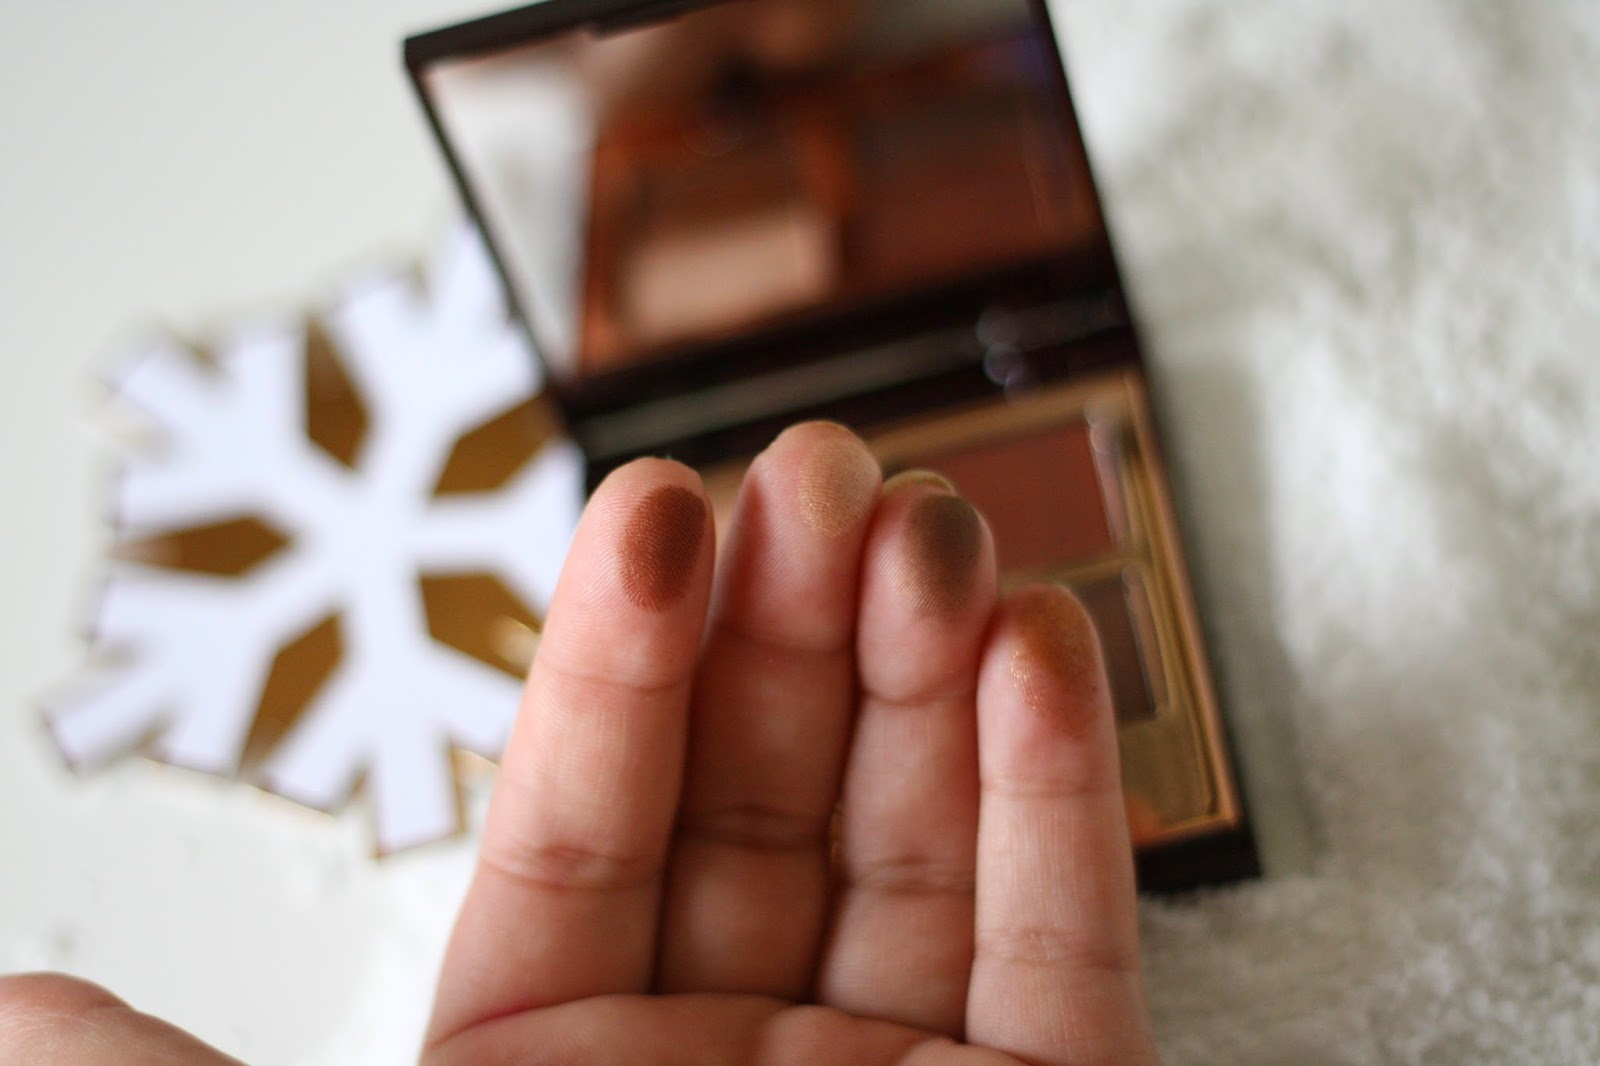 The Dolce Vita, Charlotte Tilbury, Make Up, Review